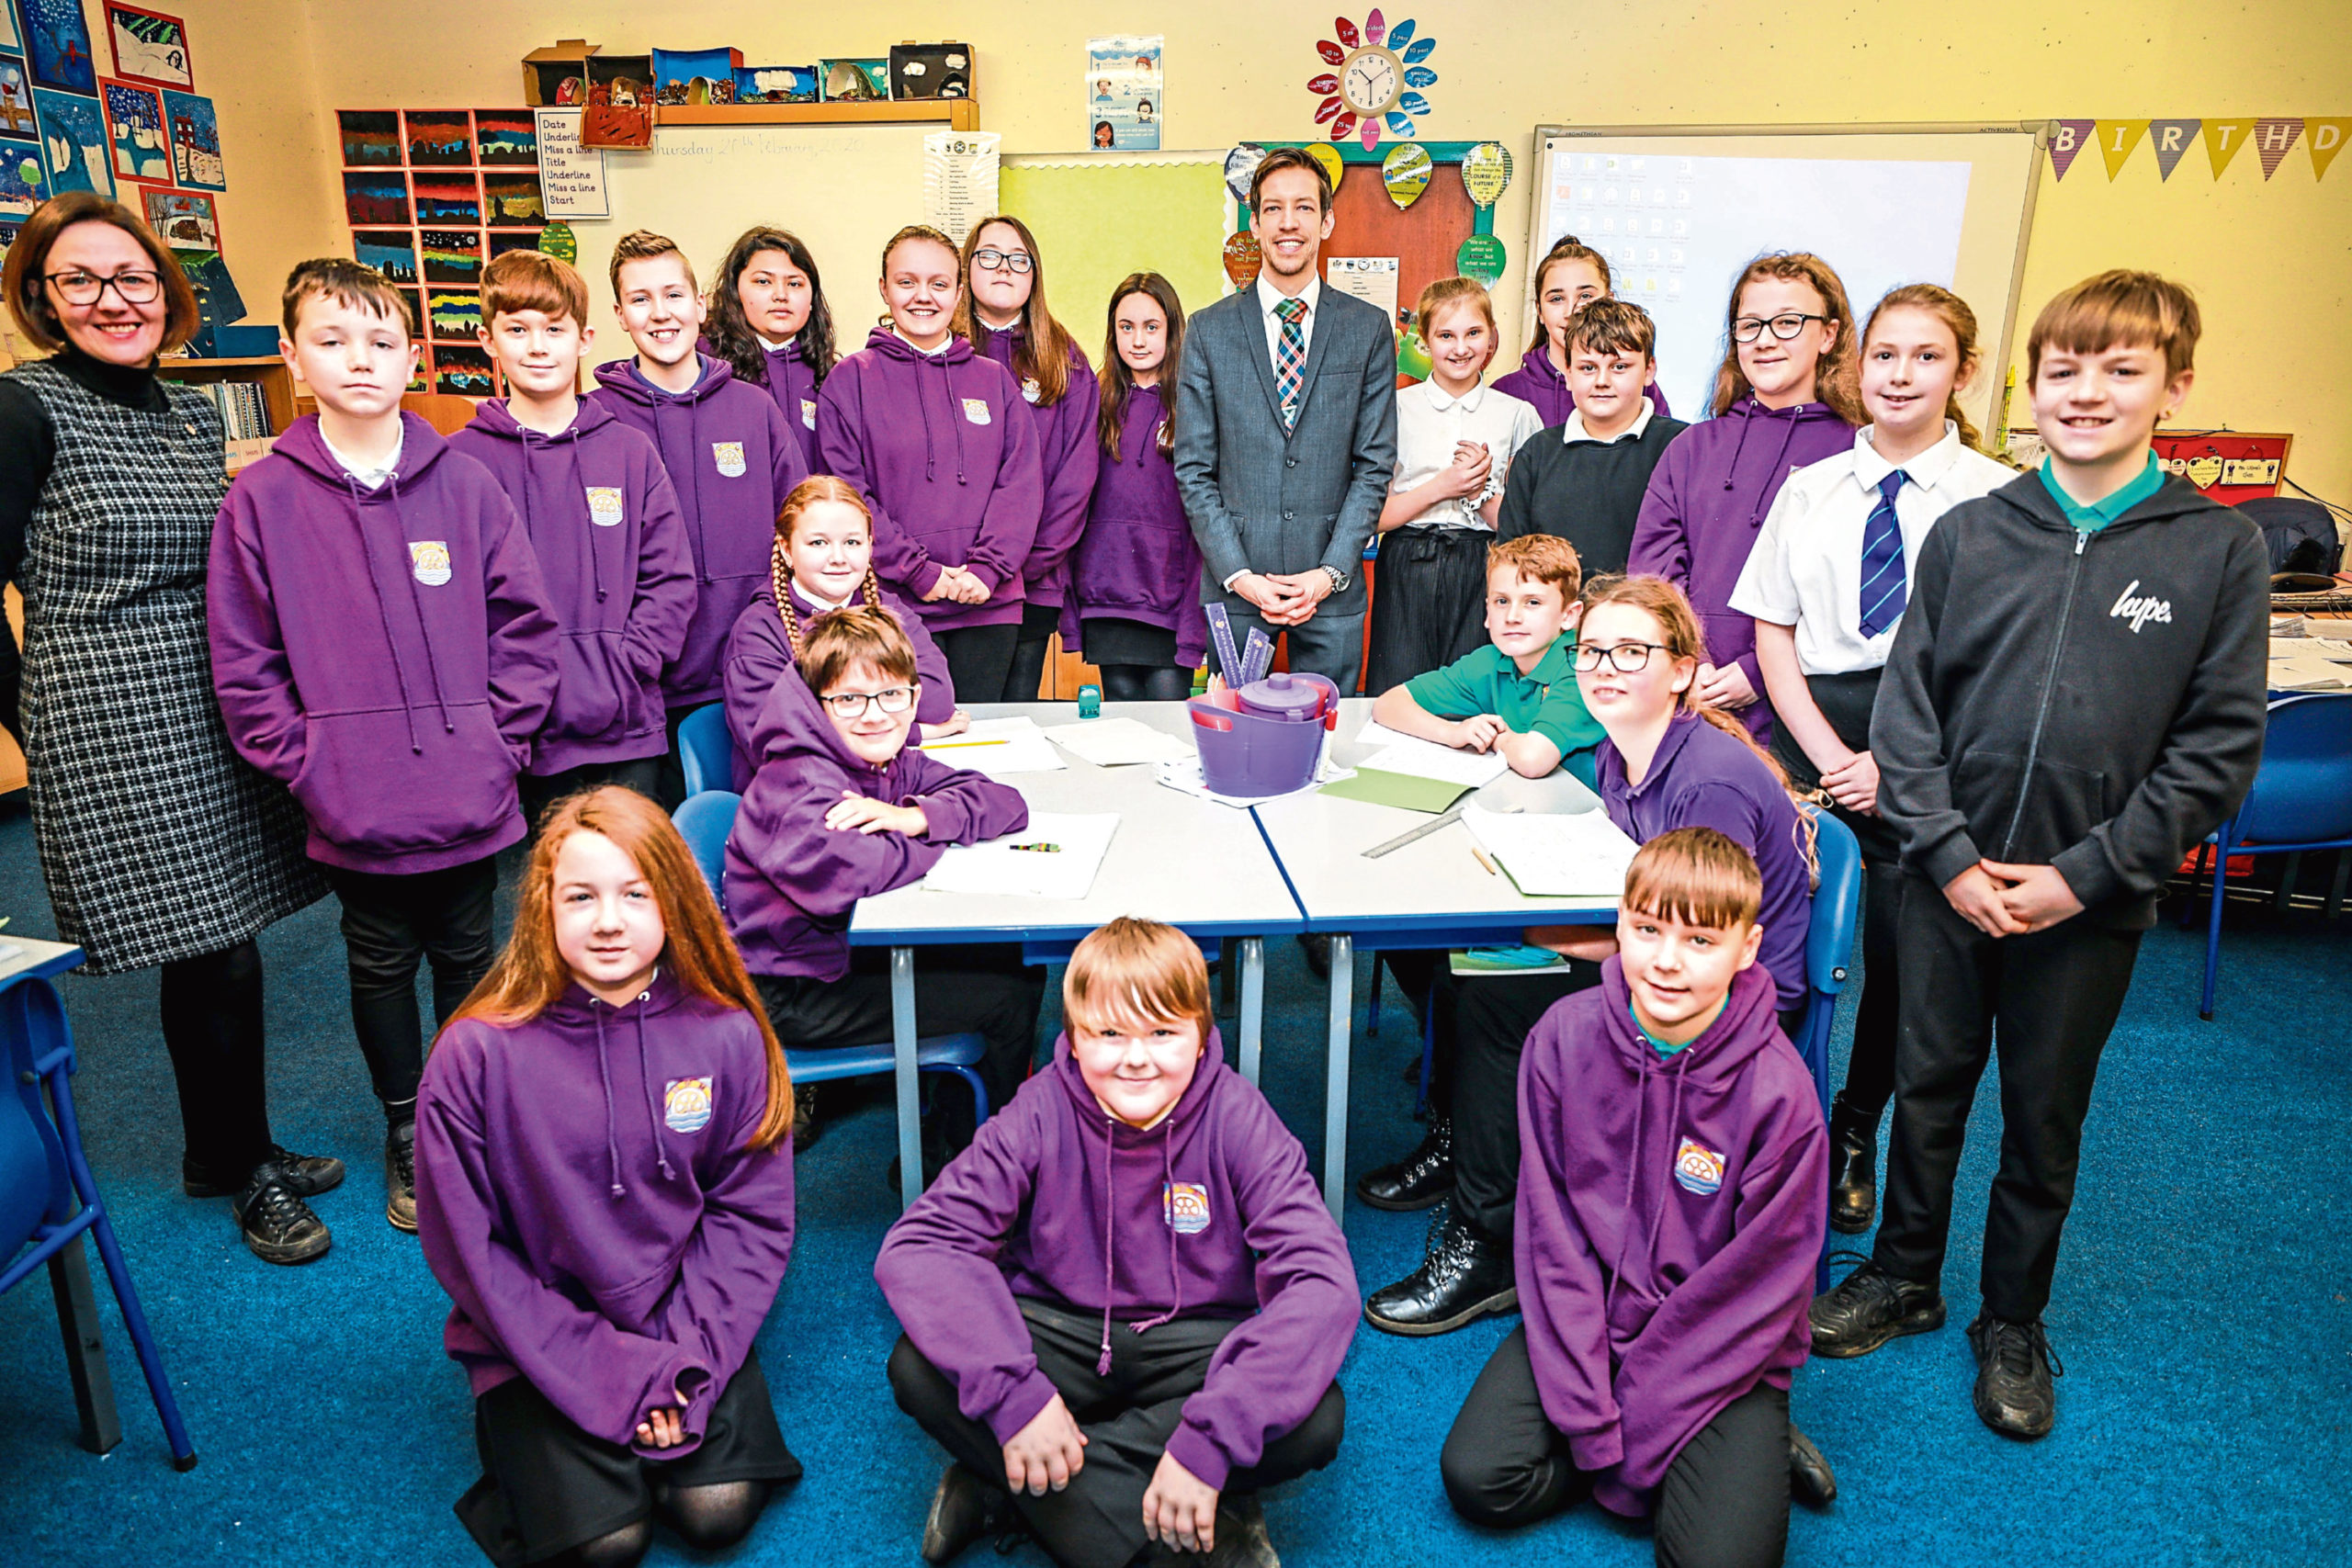 Primary 7 pupils with Councillor John Alexander.